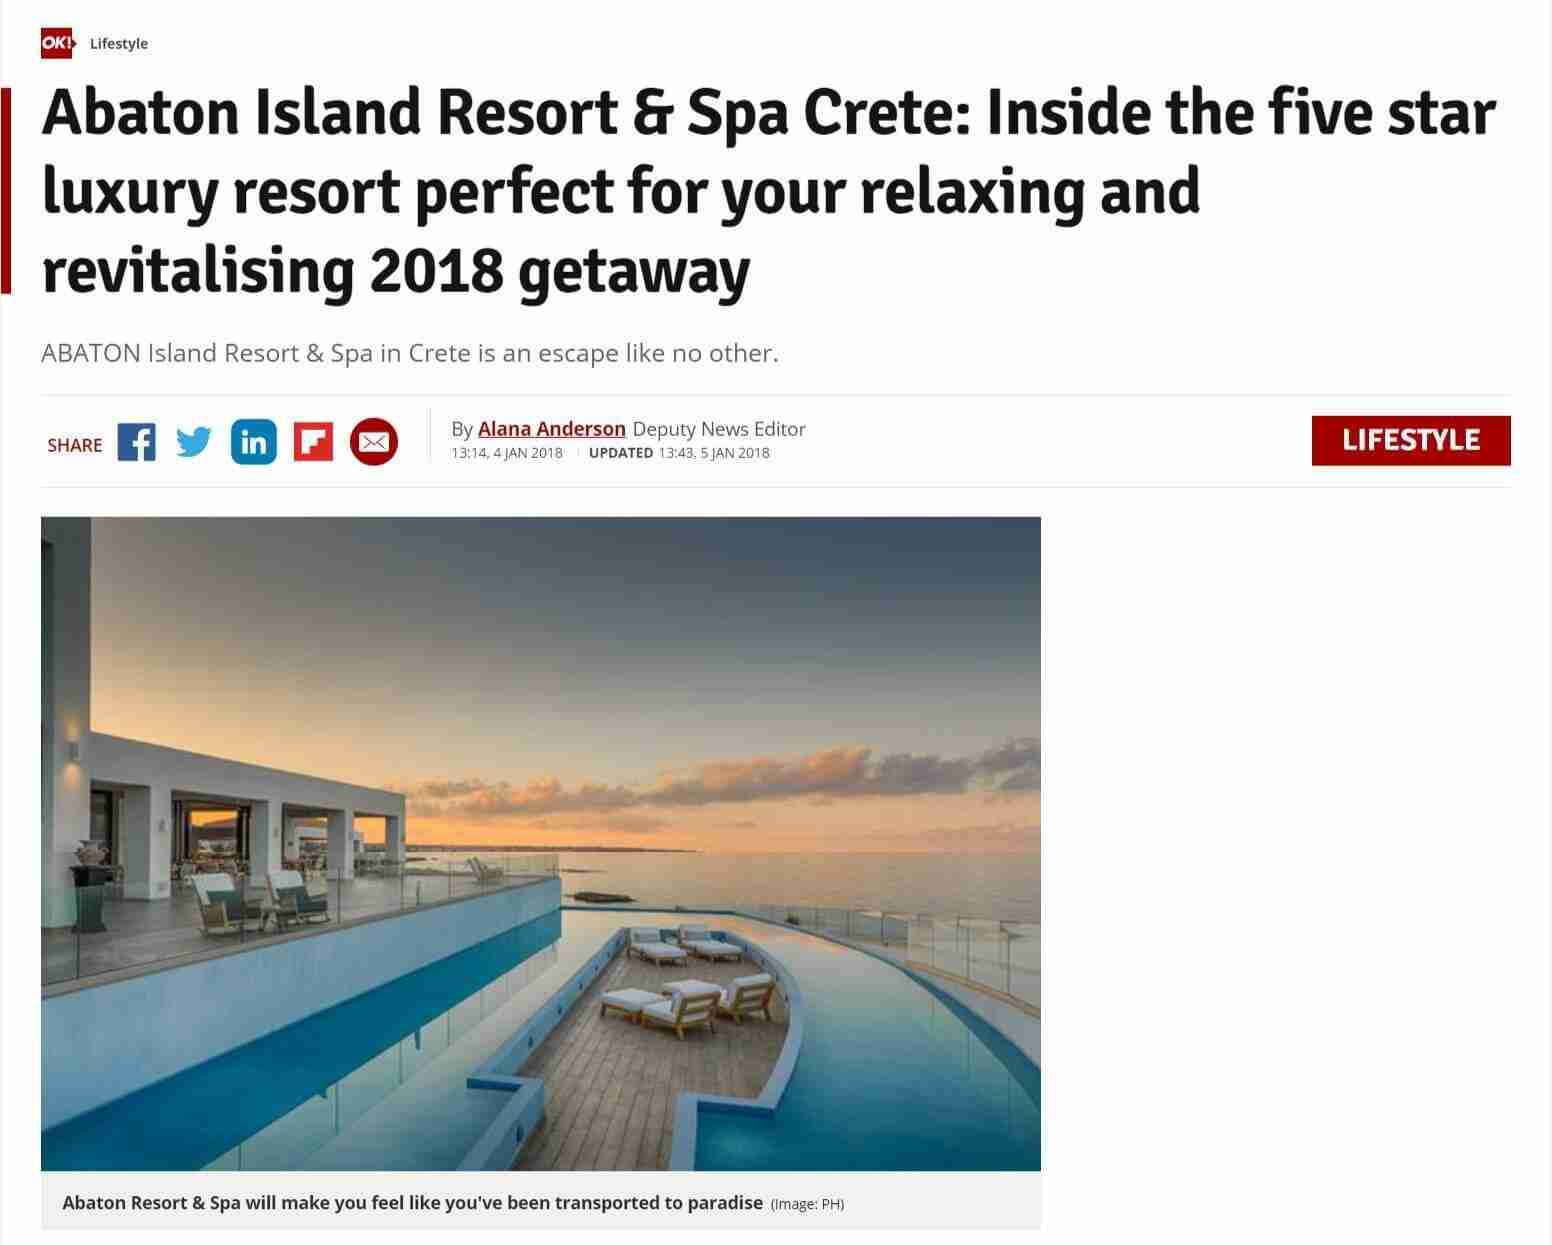 Inside the five star luxury resort perfect for your relaxing and revitalising 2018 getaway